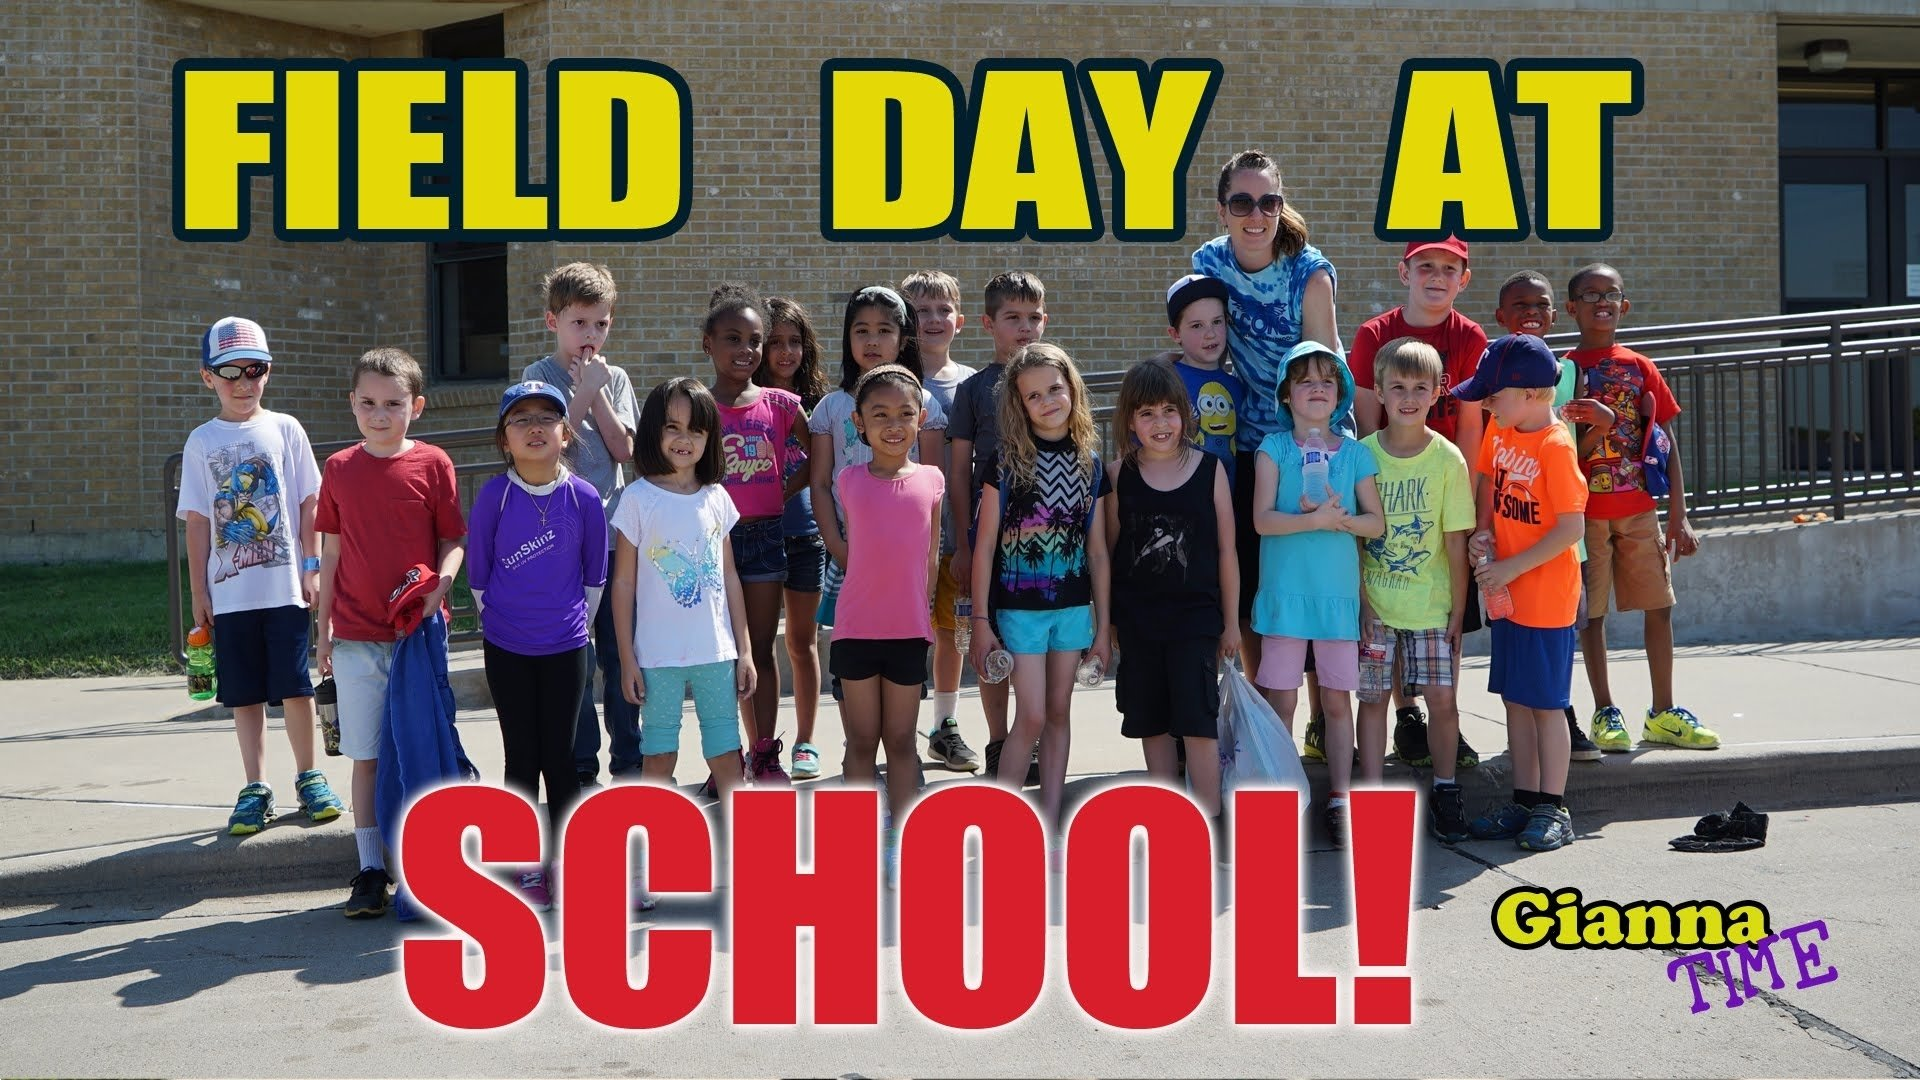 10 Stylish Elementary School Field Day Ideas field day at school with fun outdoor games for kids and tug a war 2021